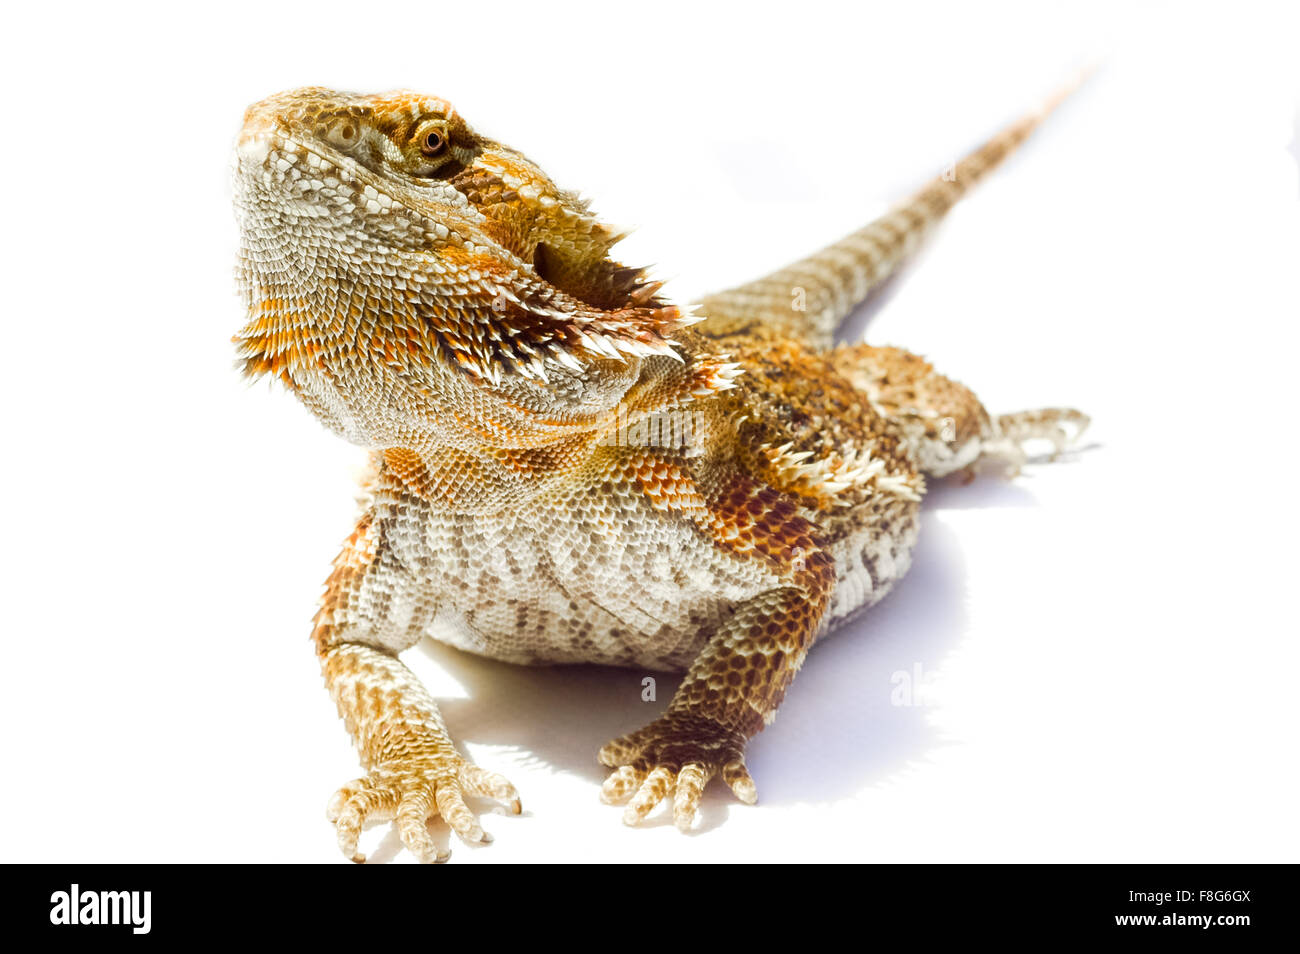 I'm so handsome - Pet German Giant Bearded Dragon, isolated sunning outdoors. - Stock Image